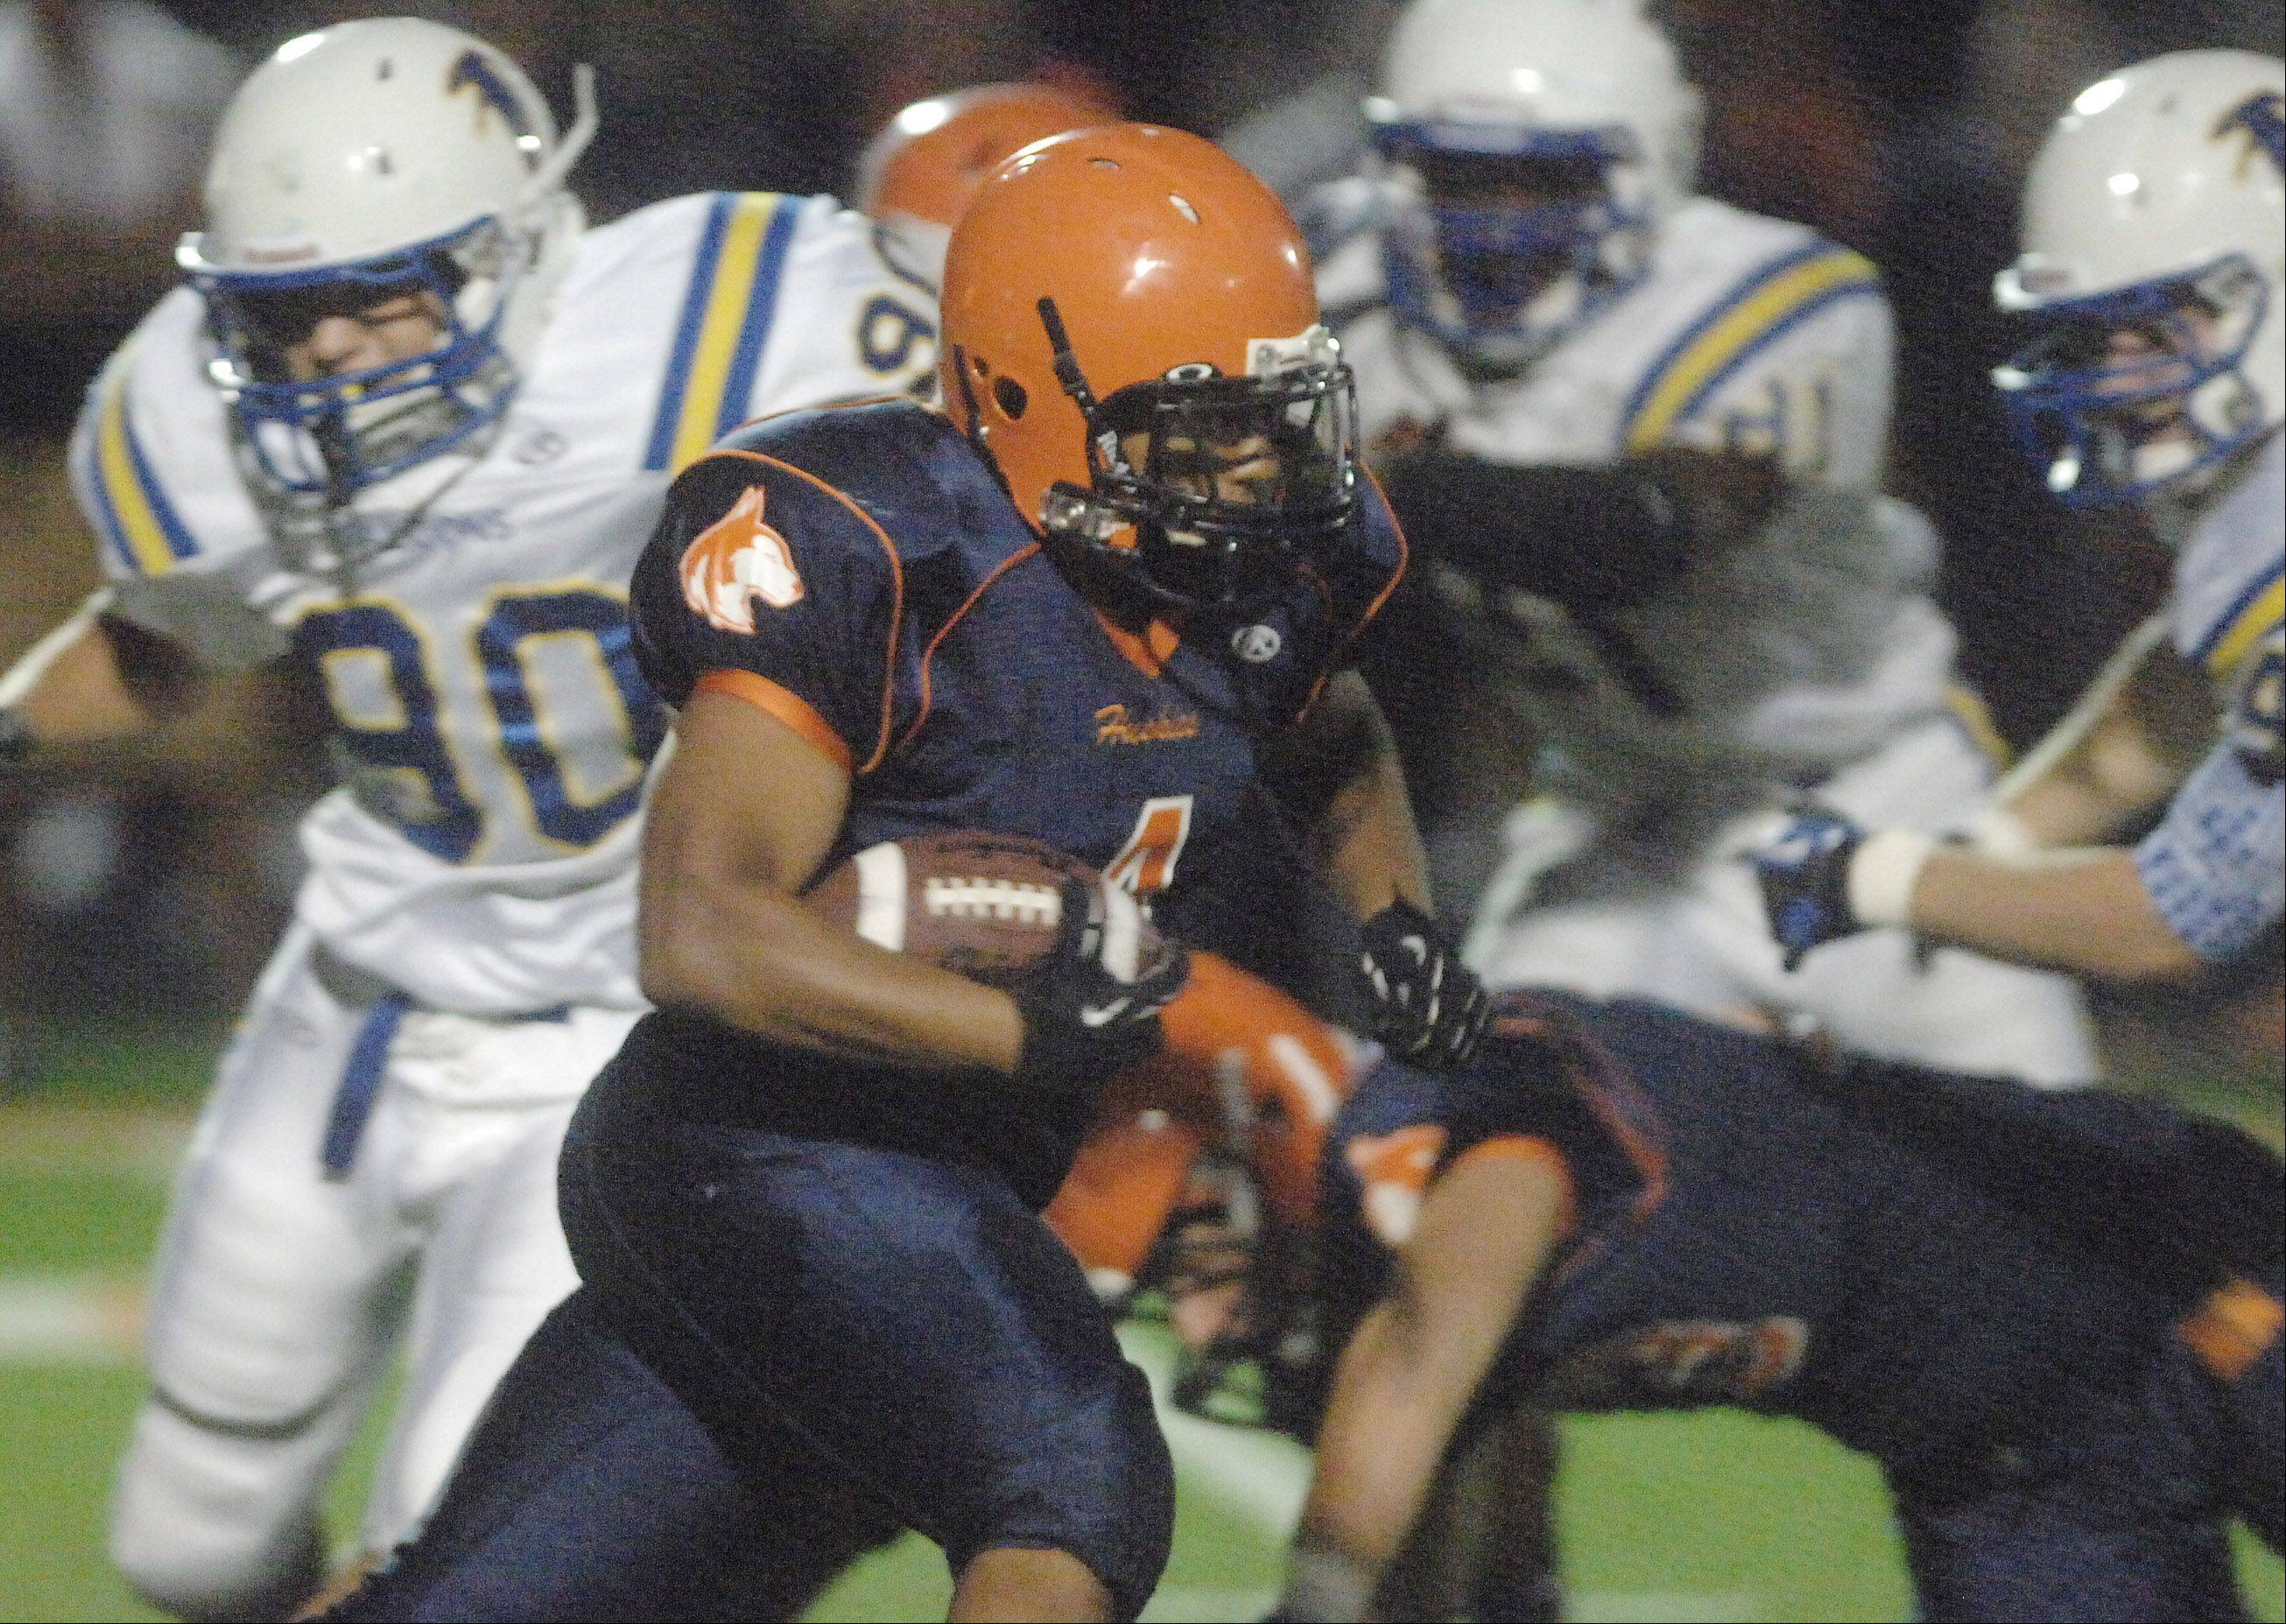 Images: Wheaton North at Naperville North football